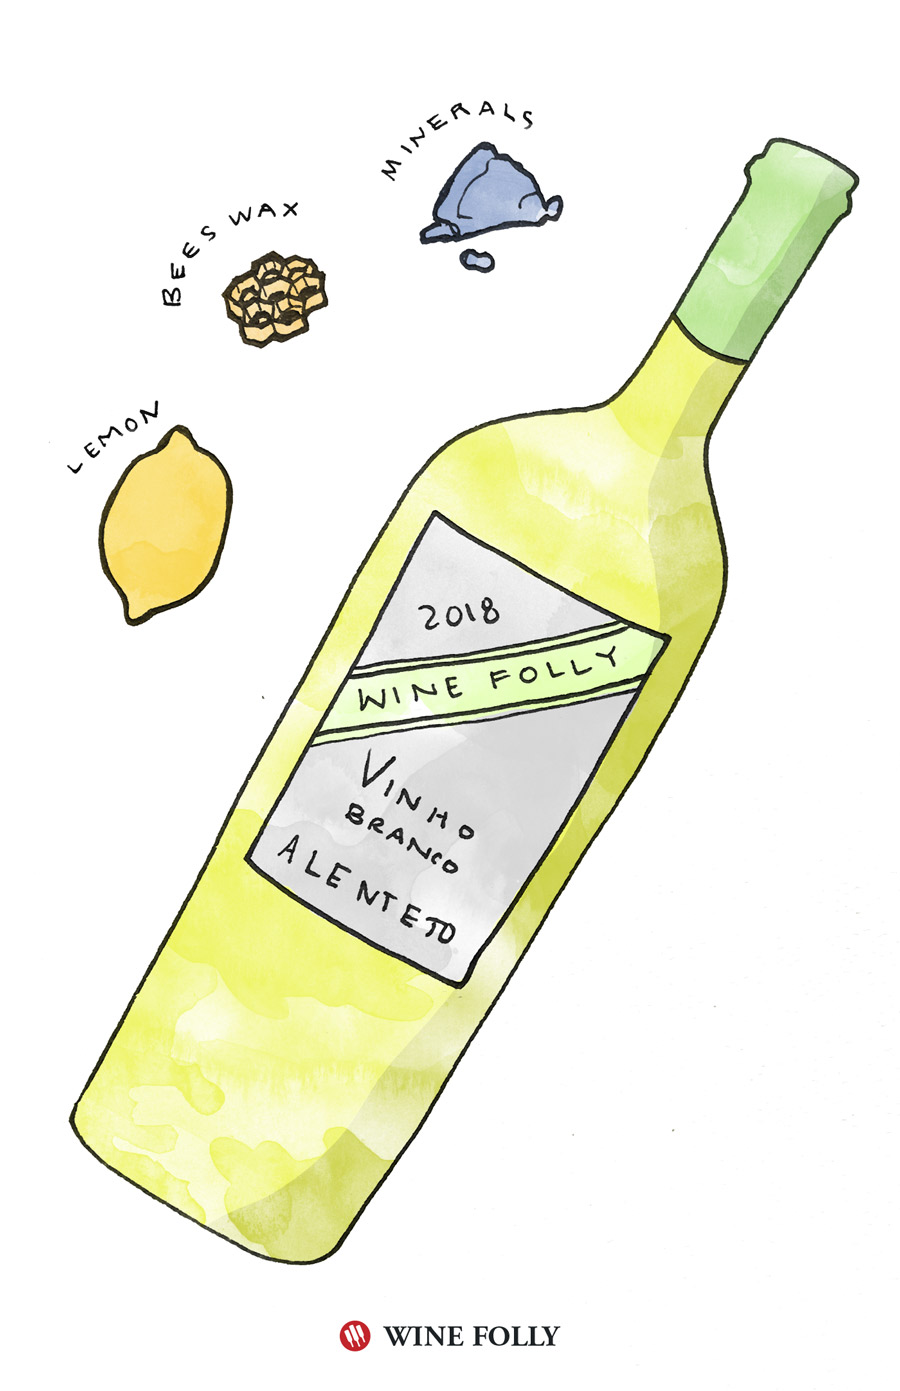 Vinho Branco Portuguese White Wine Tasting Notes Illustration by Wine Folly